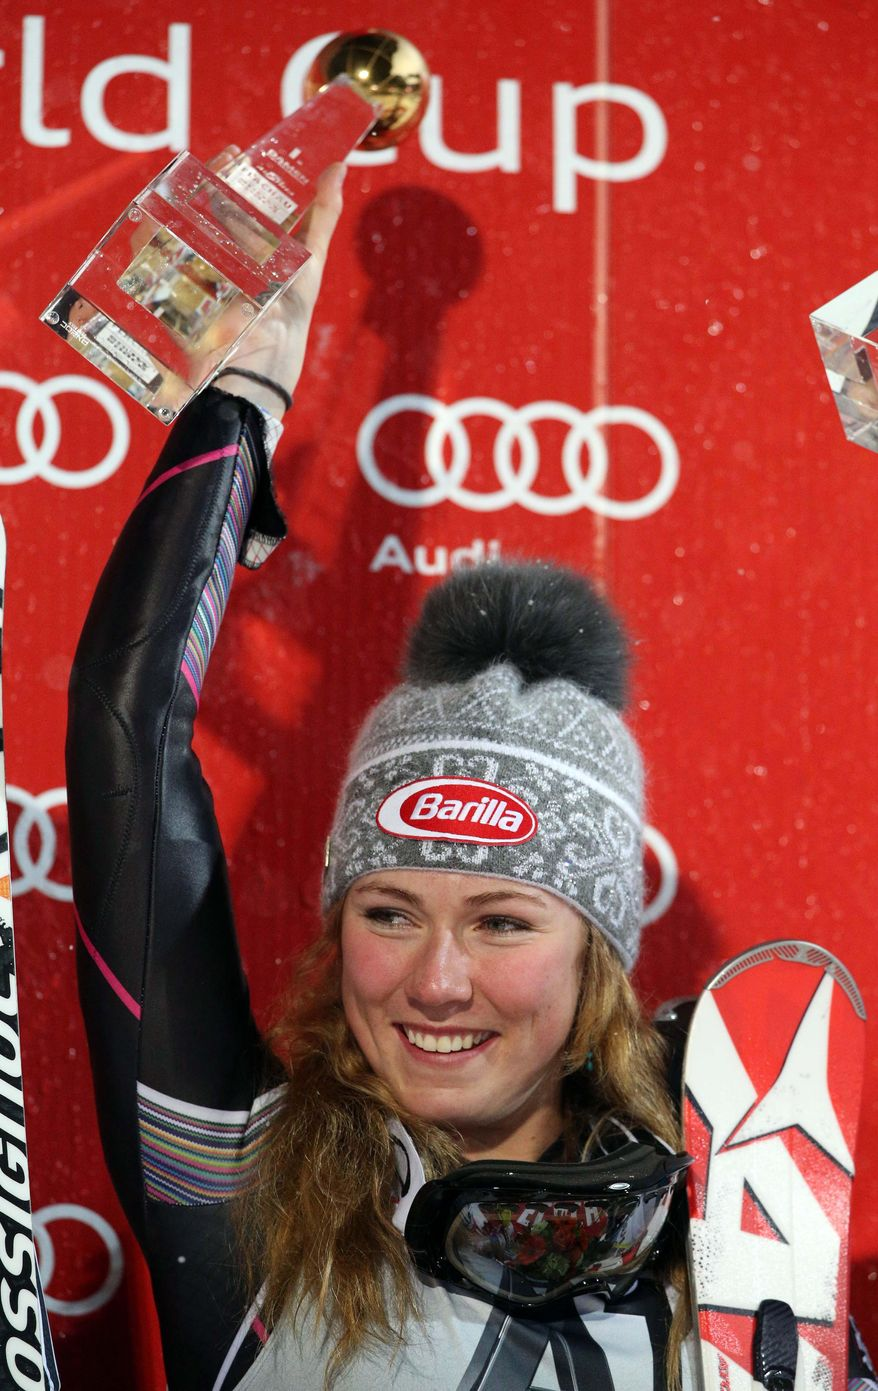 Mikaela Shiffrin, of the United States, celebrates on the podium after winning an alpine ski, women's World Cup slalom in Flachau, Austria, Tuesday, Jan. 14, 2014. American teenager Mikaela Shiffrin held on to a comfortable first-run lead to win a women's World Cup night slalom on Tuesday. (AP Photo/Enrico Schiavi)